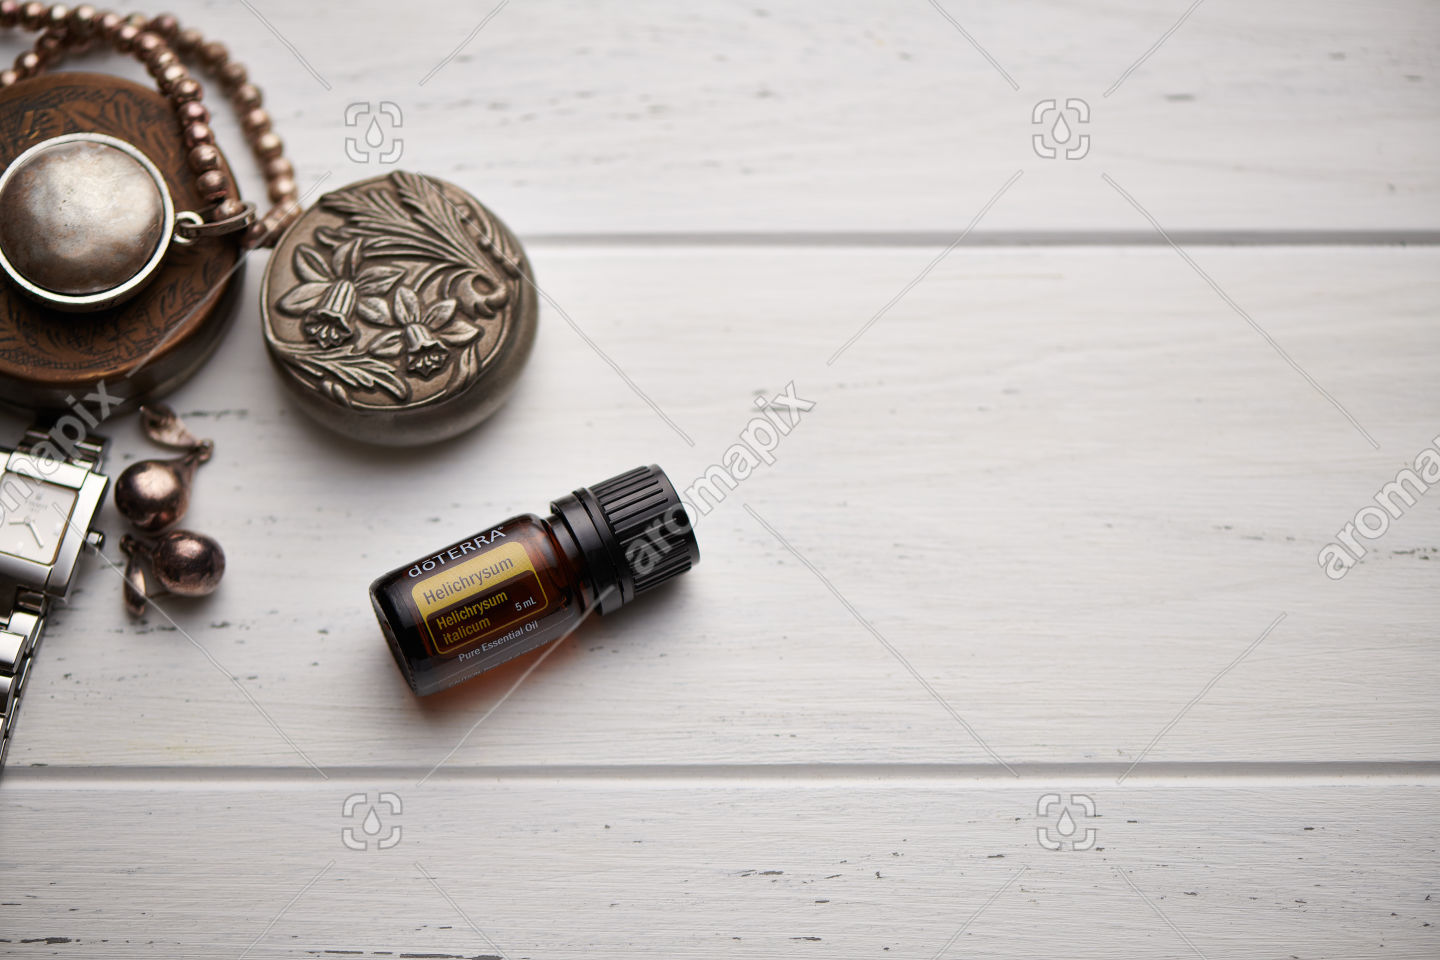 doTERRA Helichrysum on rustic background